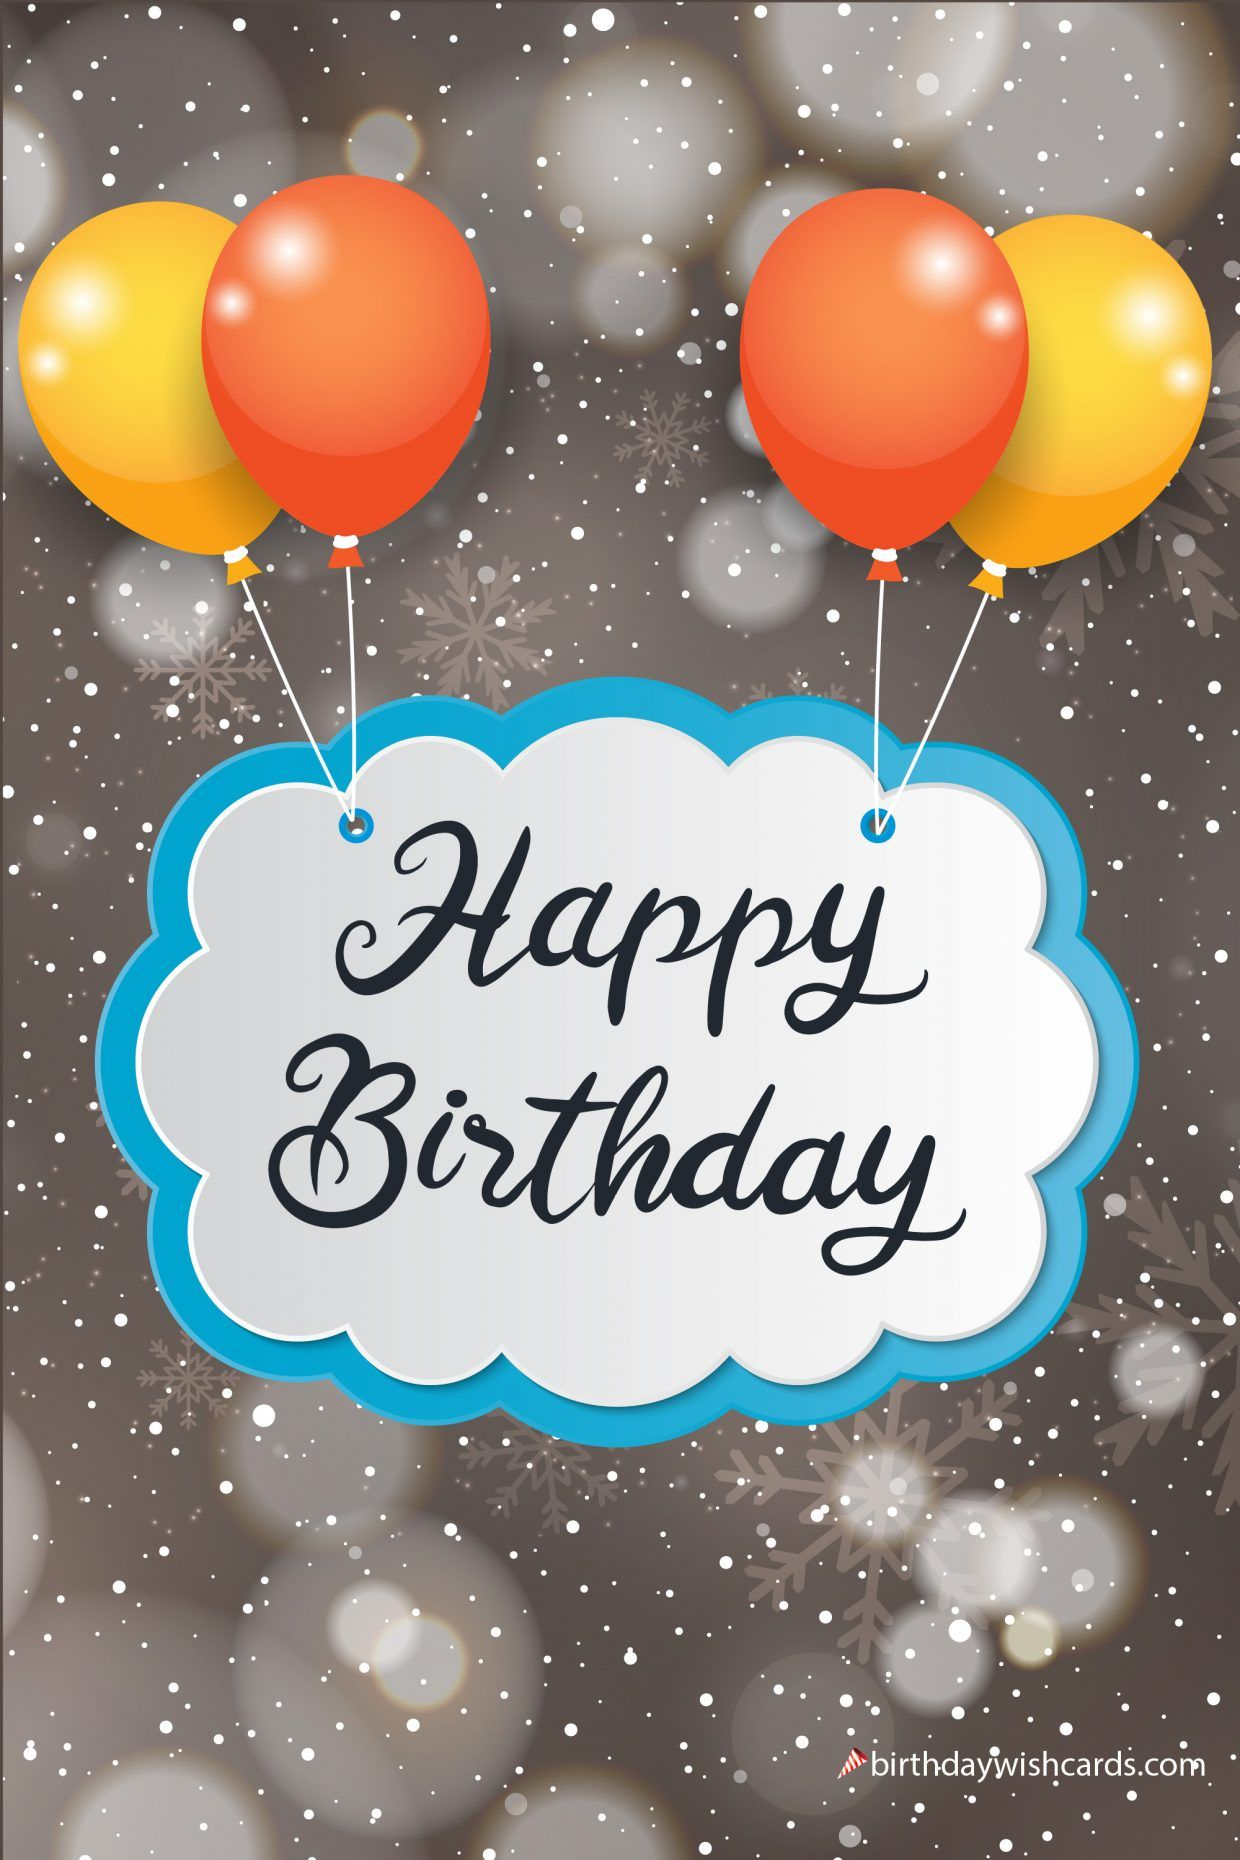 Happy Birthday To You Image With Snow Fall Birthday Wish Cards Birthday Wishes Cards Happy Birthday Messages Happy Birthday Mom